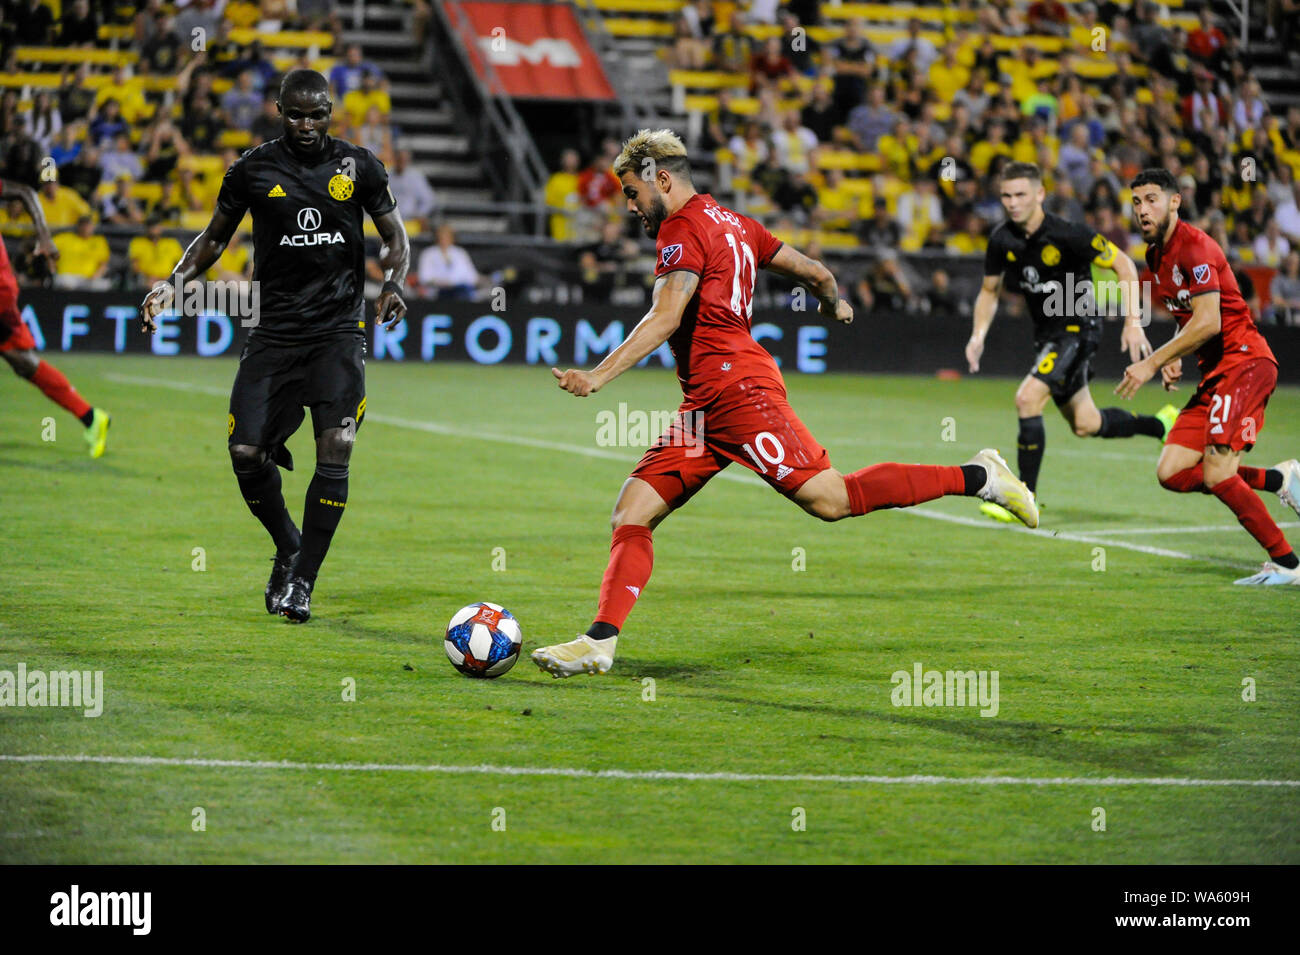 Saturday, August 17, 2019: Toronto FC midfielder Alejandro Pozuelo (10) in the second half of the match between Toronto FC and Columbus Crew SC at MAPFRE Stadium, in Columbus OH. Mandatory Photo Credit: Dorn Byg/Cal Sport Media. Toronto FC 2 - Columbus Crew SC 2 at the end of the first half. Stock Photo